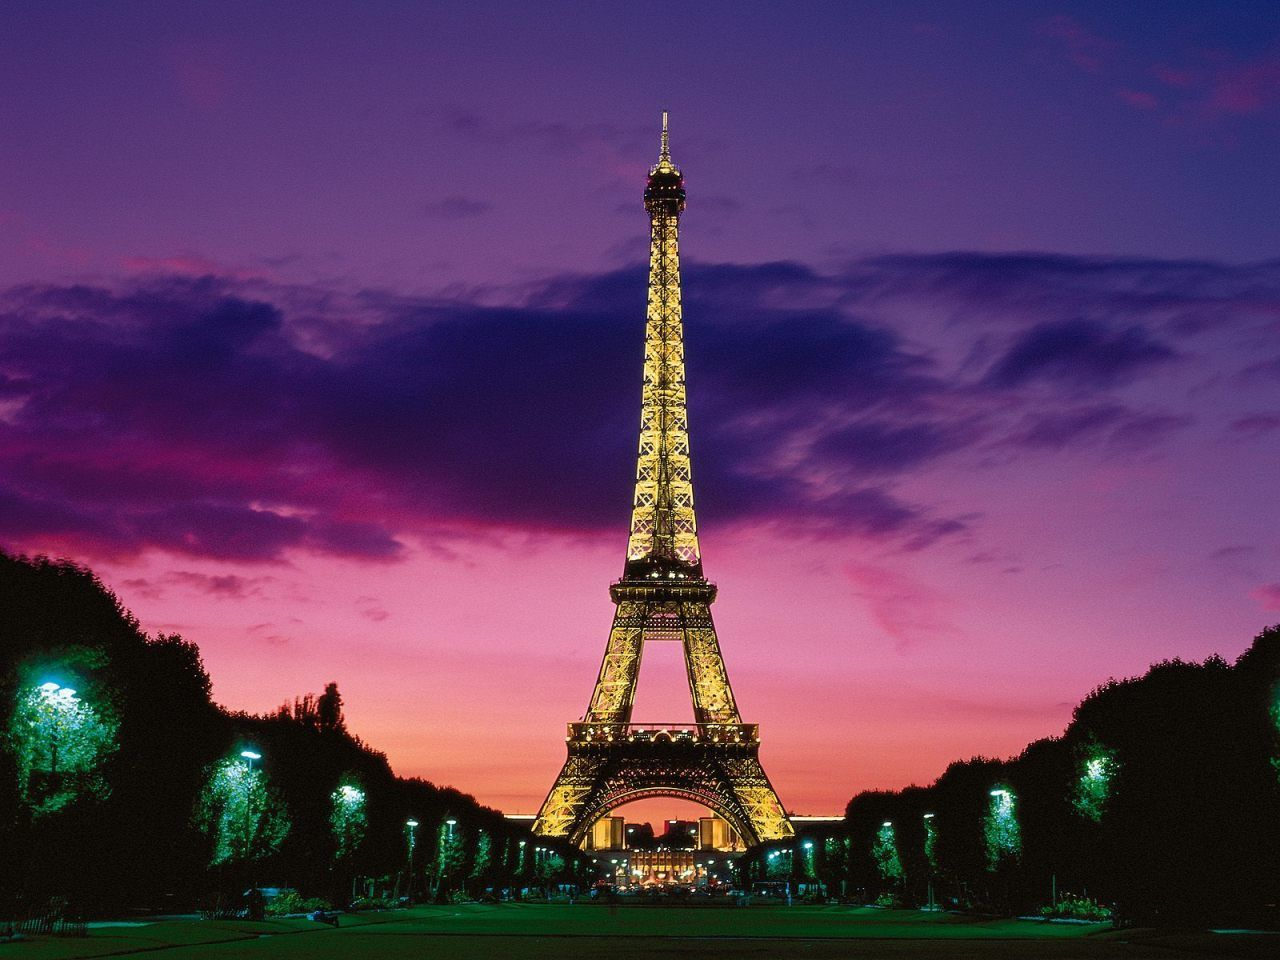 eiffel tower the eiffel tower is an iron lattice tower located on